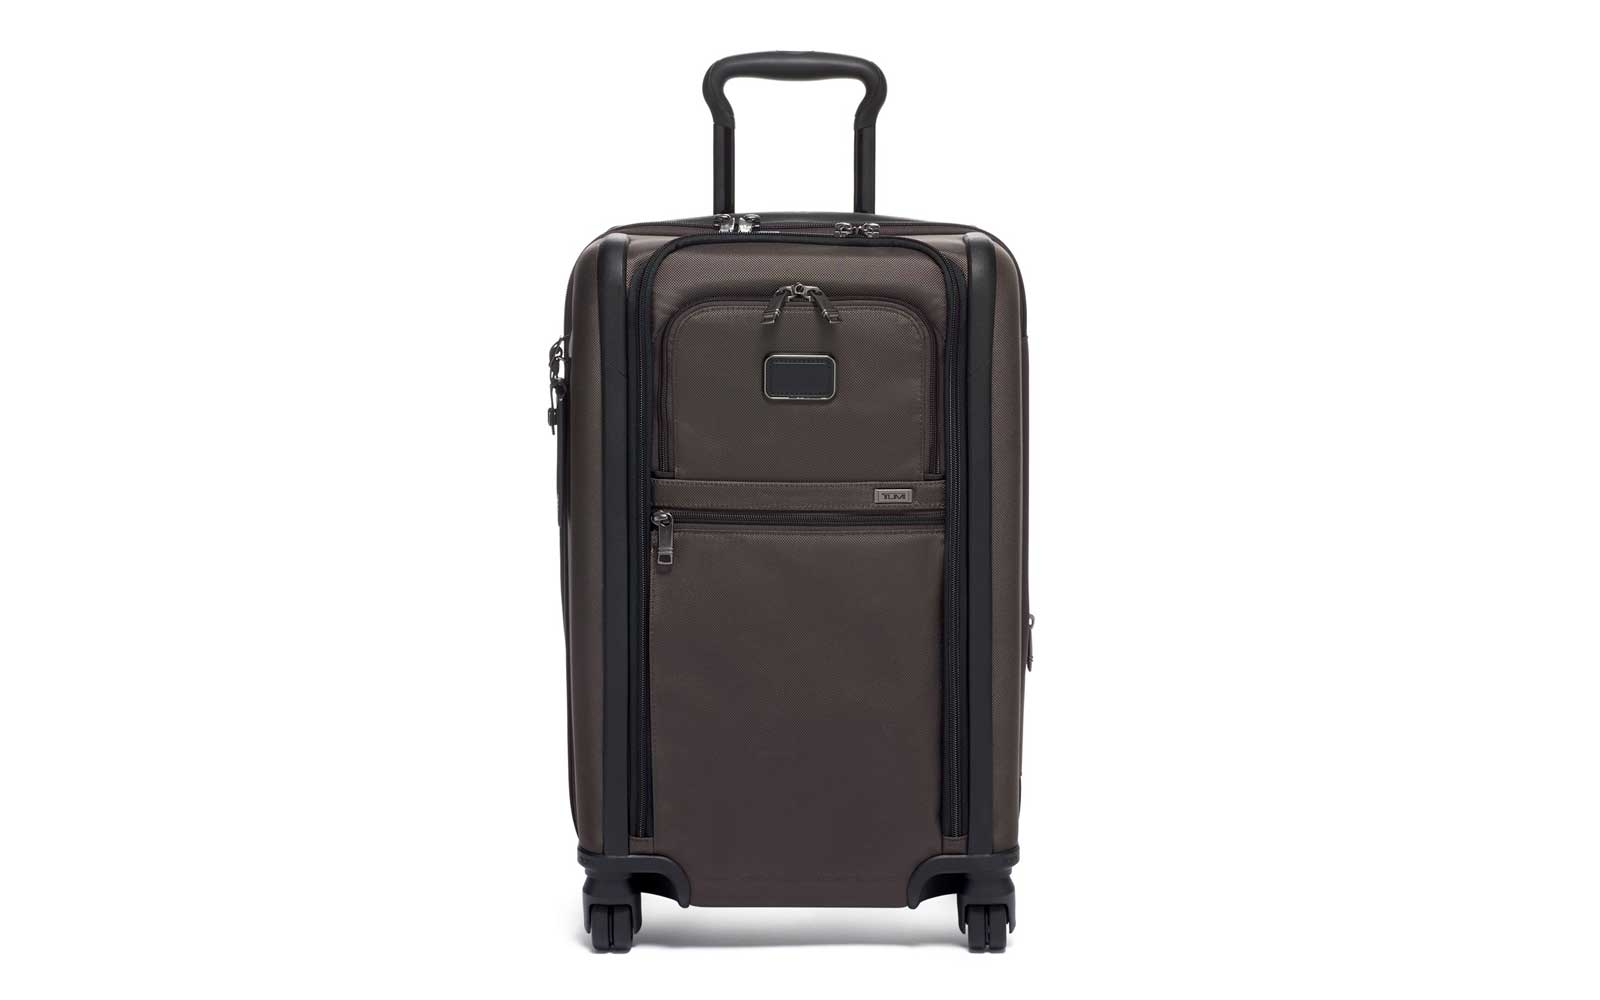 Tumi Brown Carry-on Suitcase